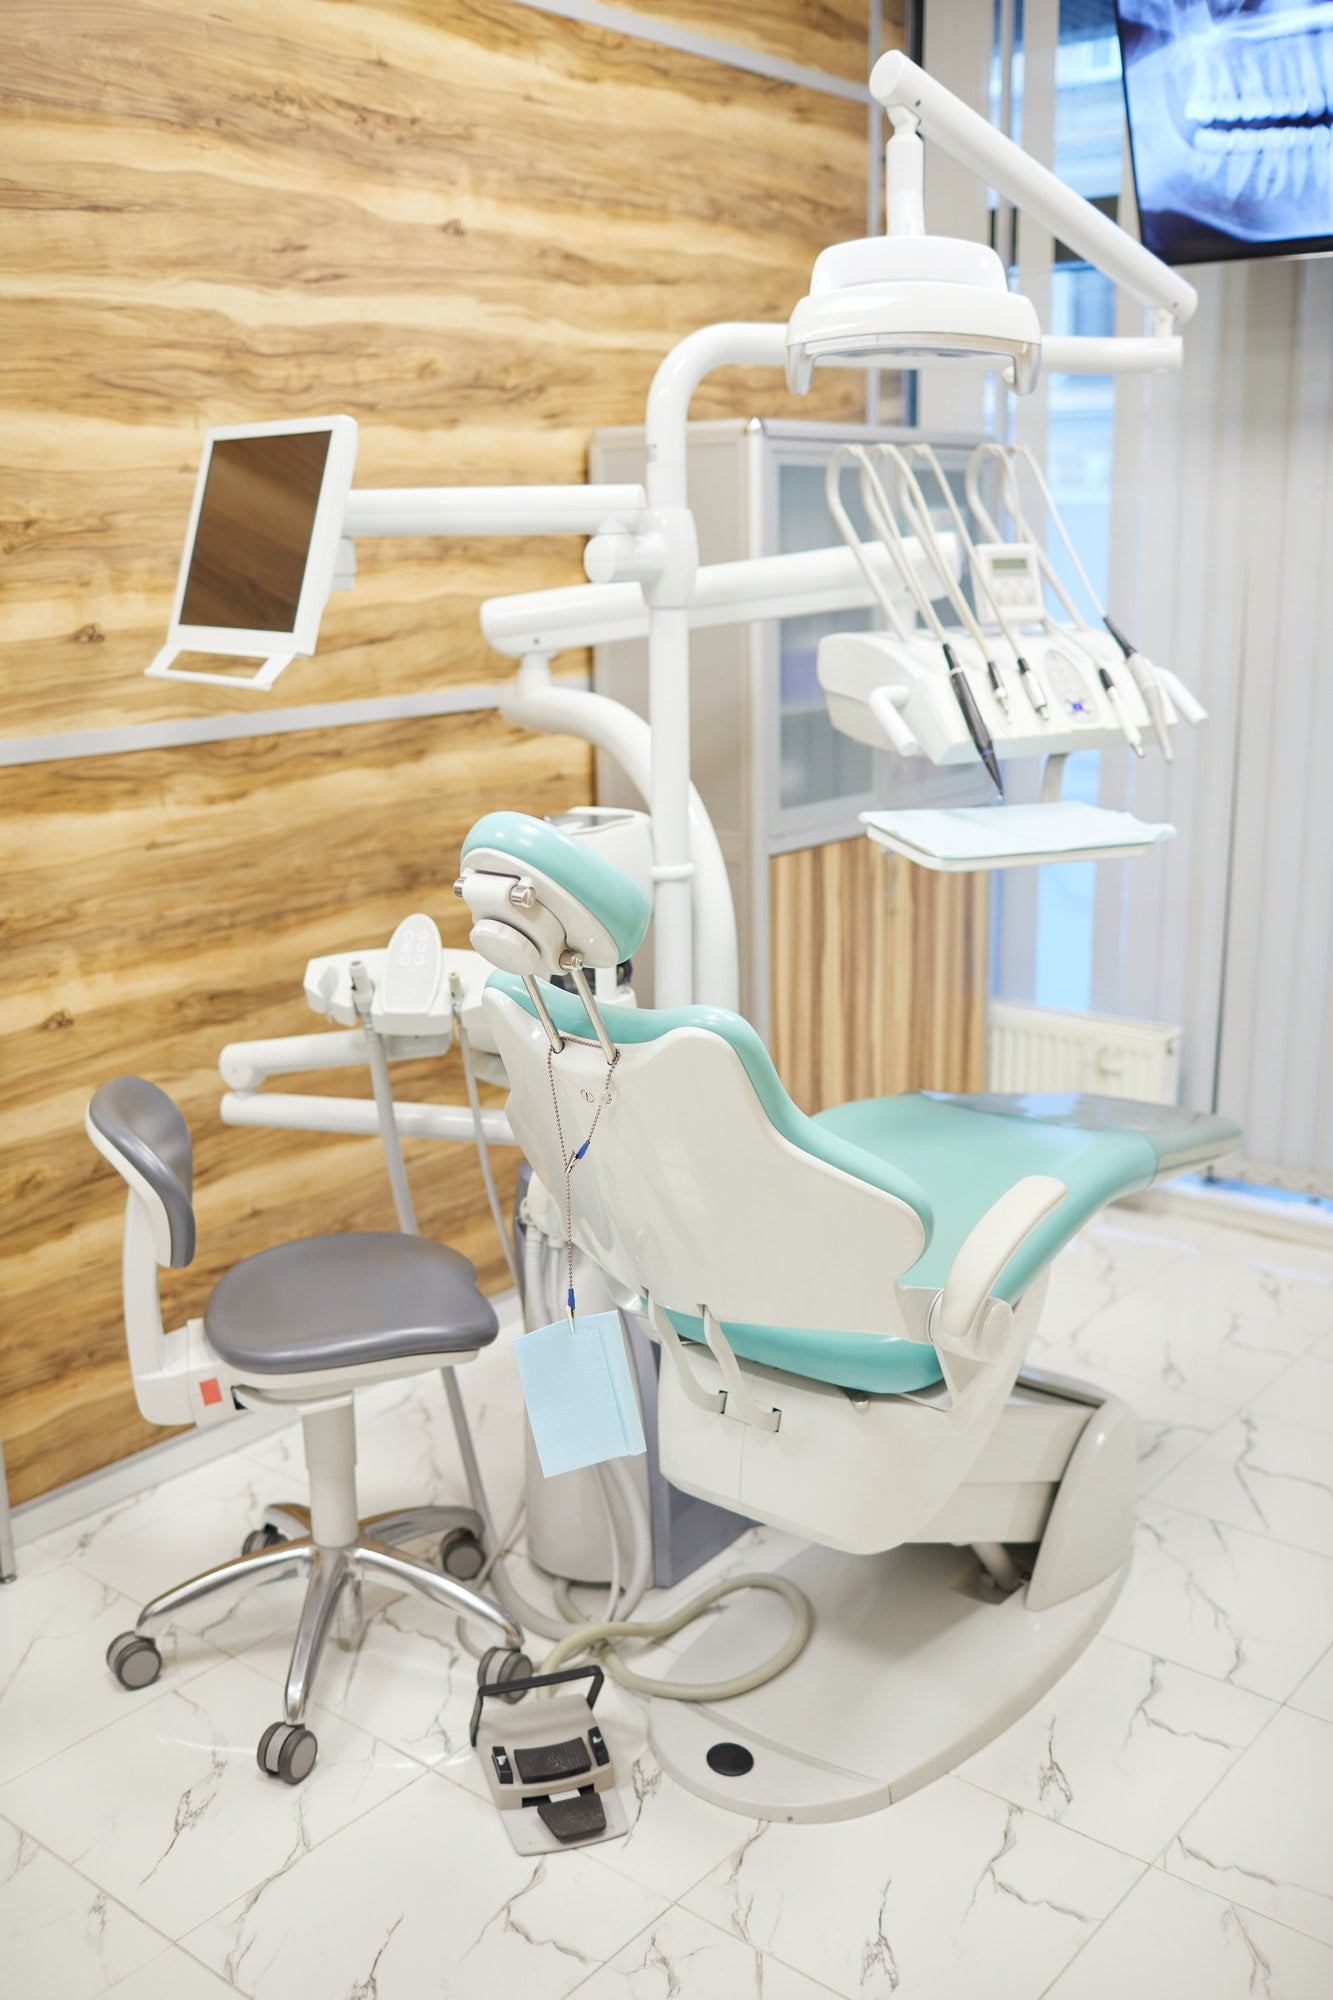 Workplace of dentist